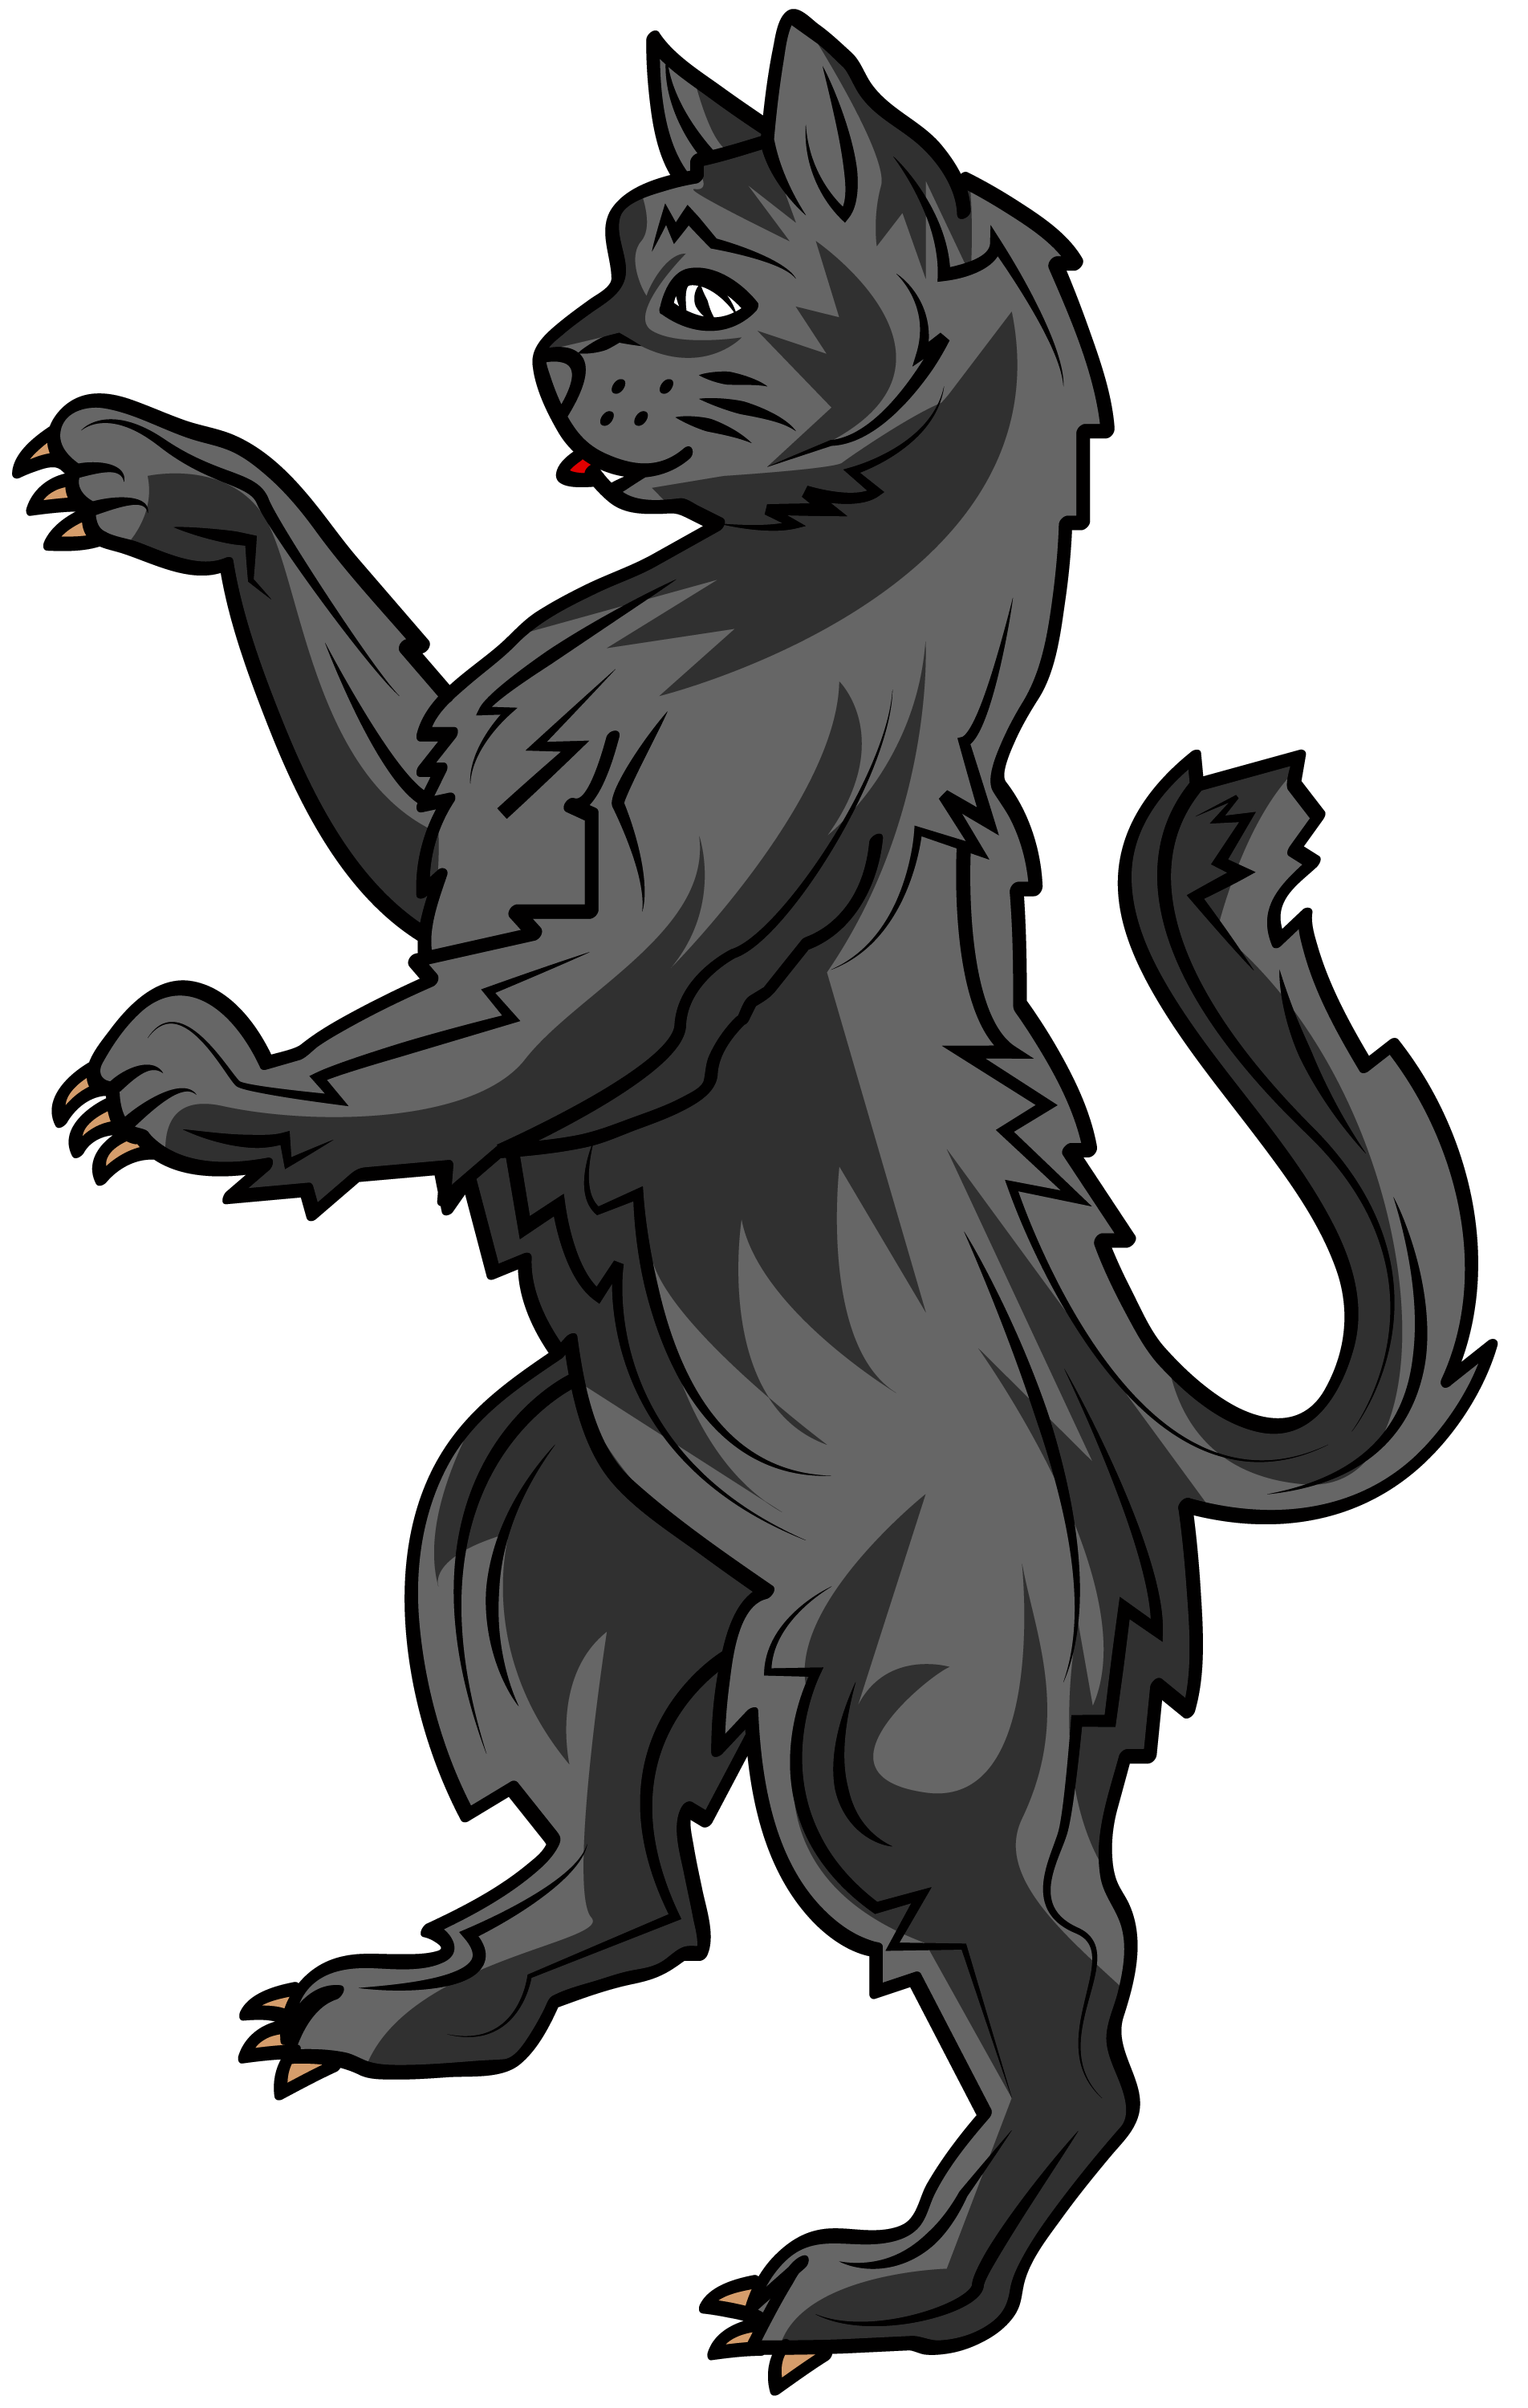 Cat arm png. The in heraldry is